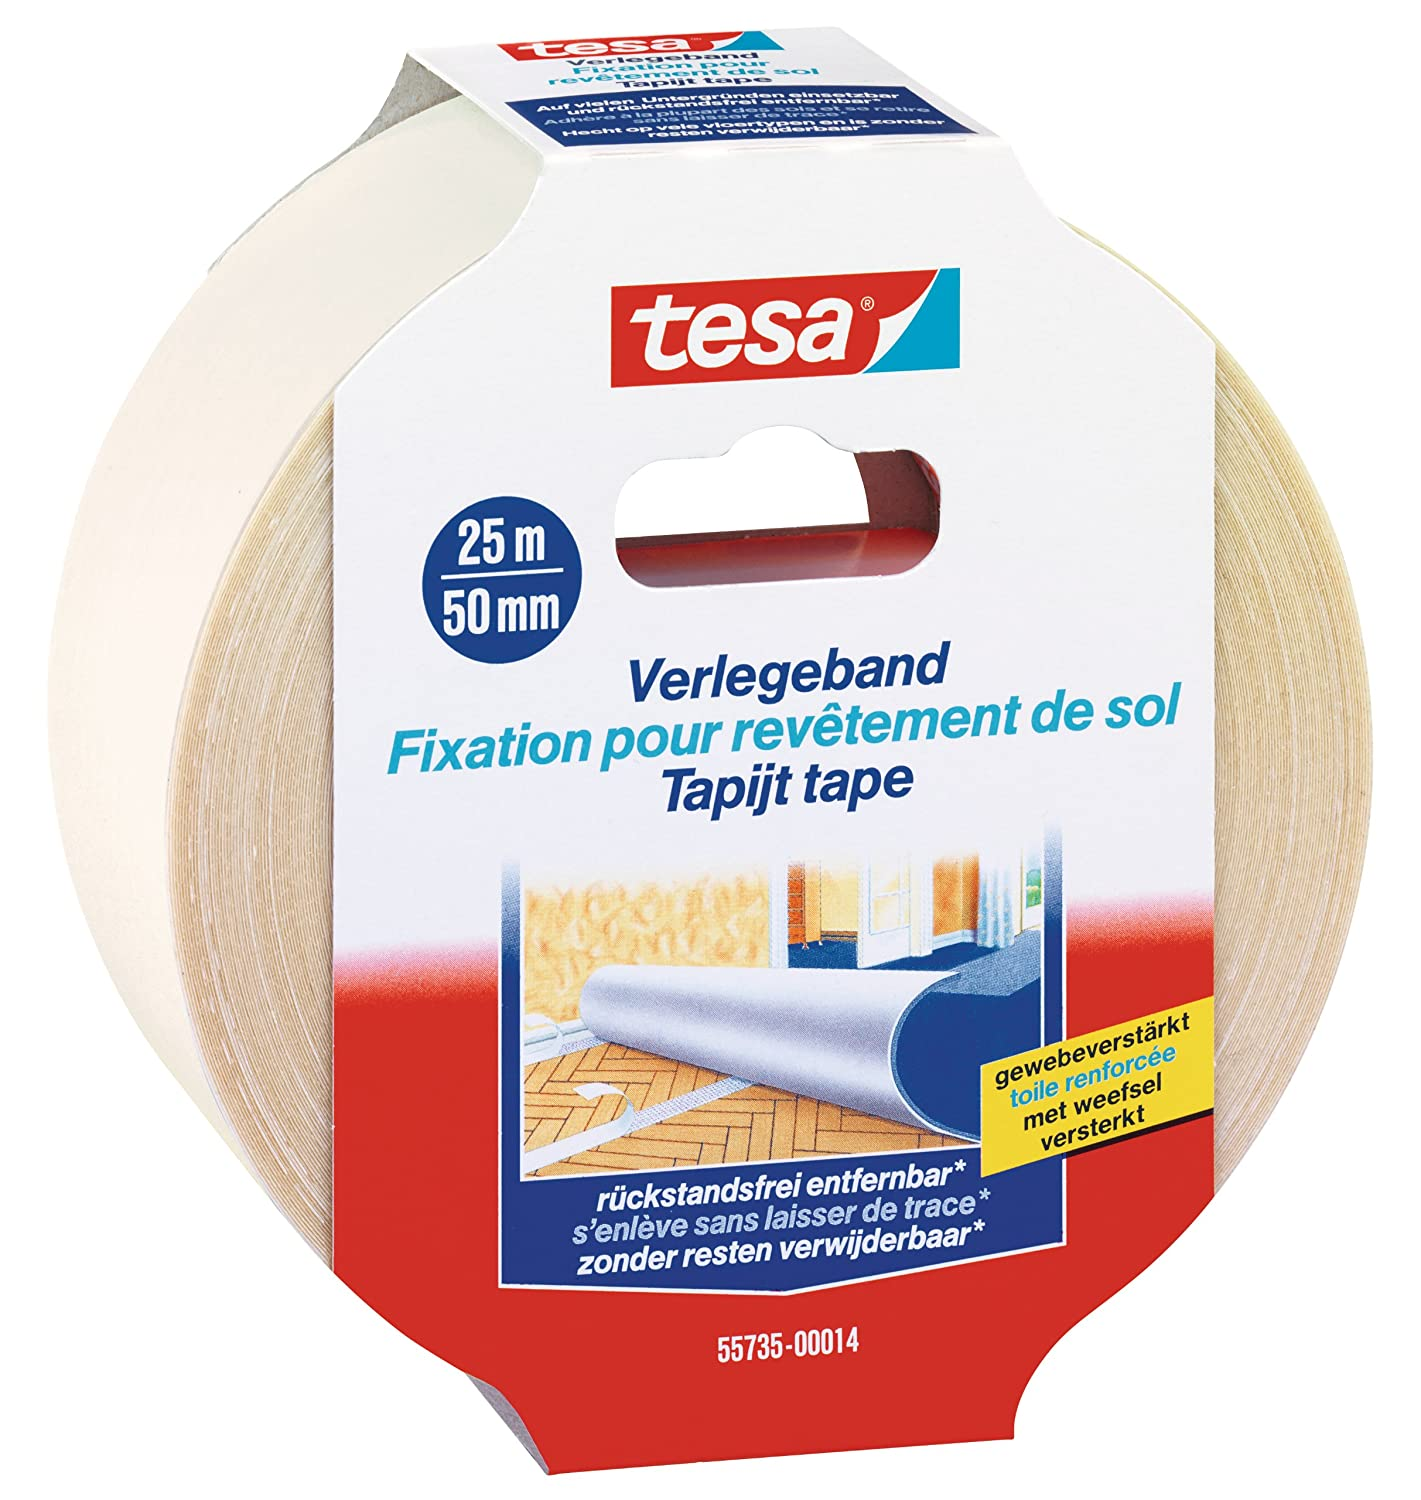 Tesa 55731-11 Flooring Tape With Residue-Free Removal, White, 10 m x 50 mm